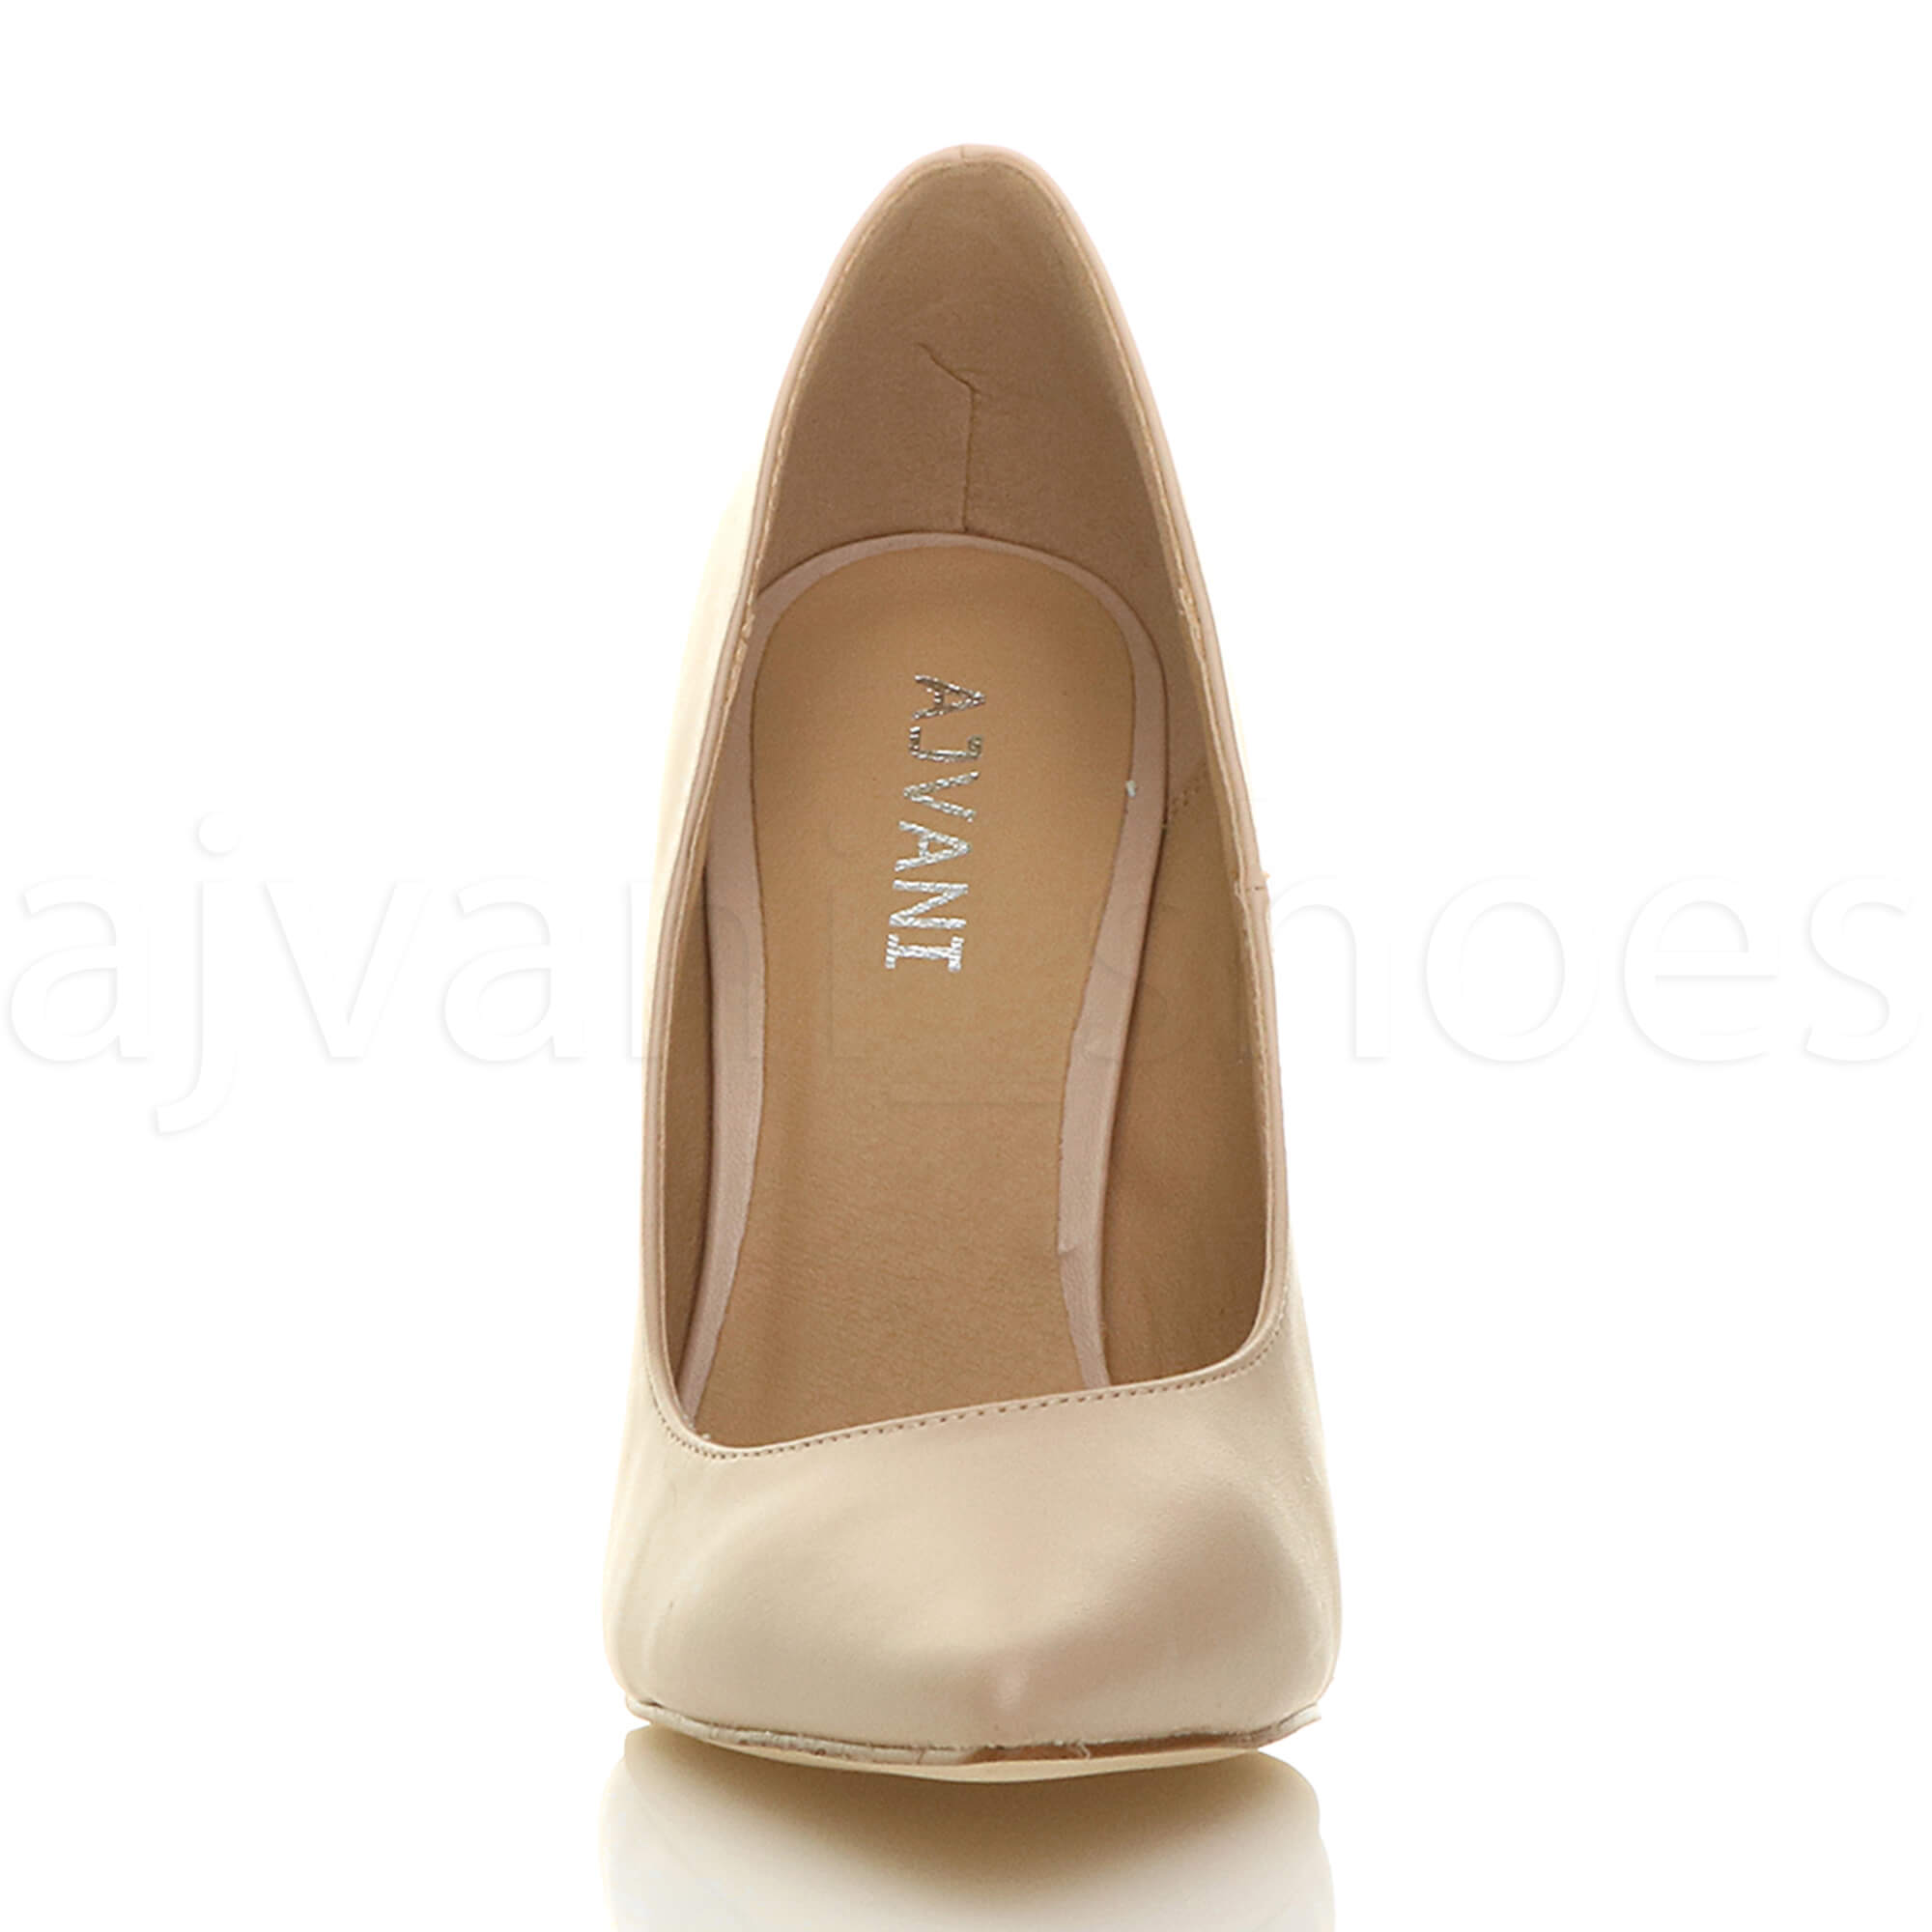 WOMENS-LADIES-HIGH-HEEL-POINTED-CONTRAST-COURT-SMART-PARTY-WORK-SHOES-PUMPS-SIZE thumbnail 125